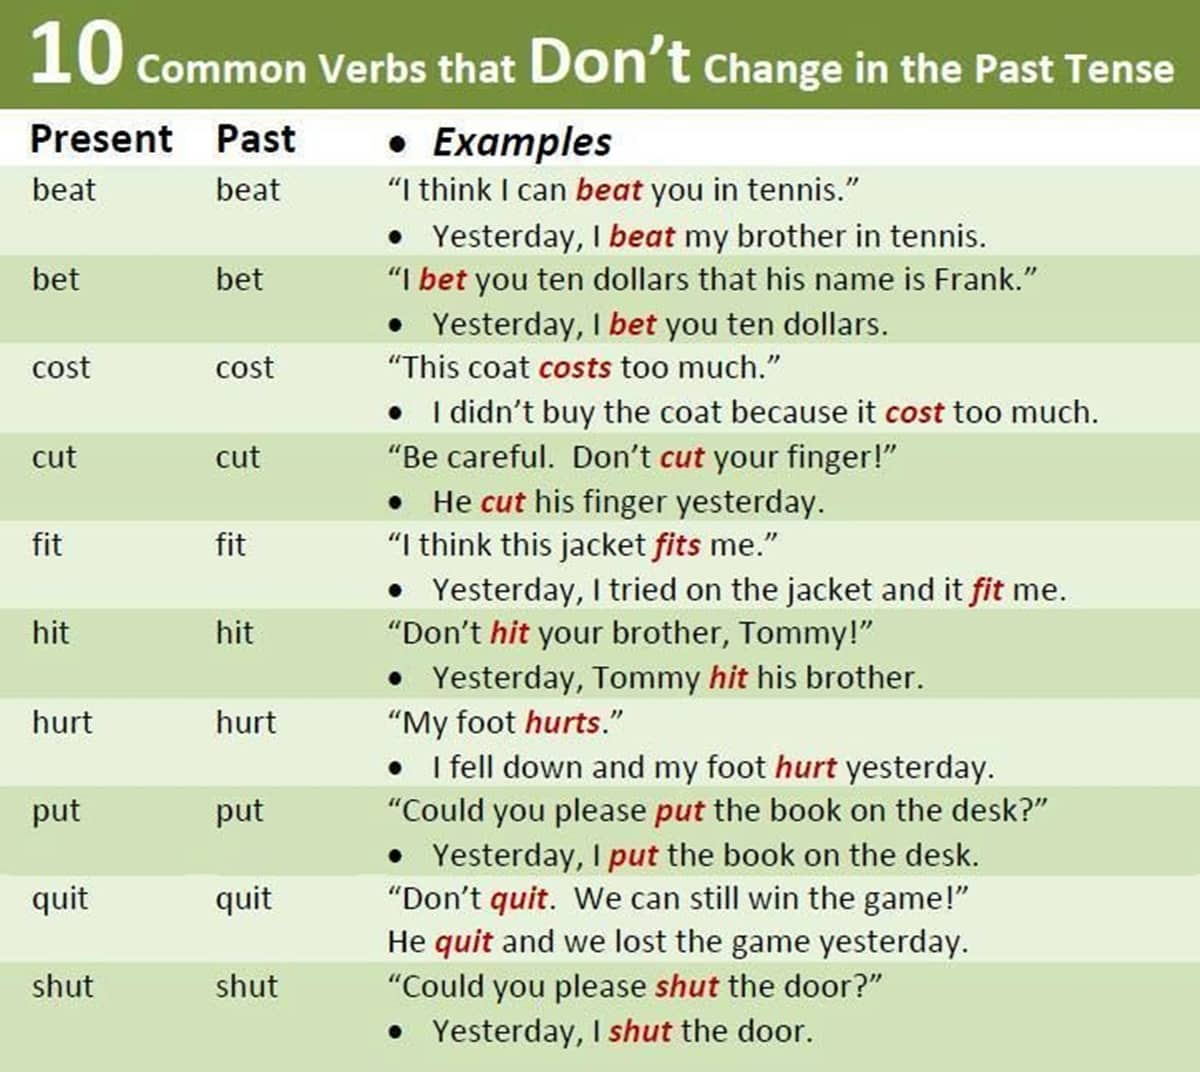 Verbs that Don't Change in the Past Tense